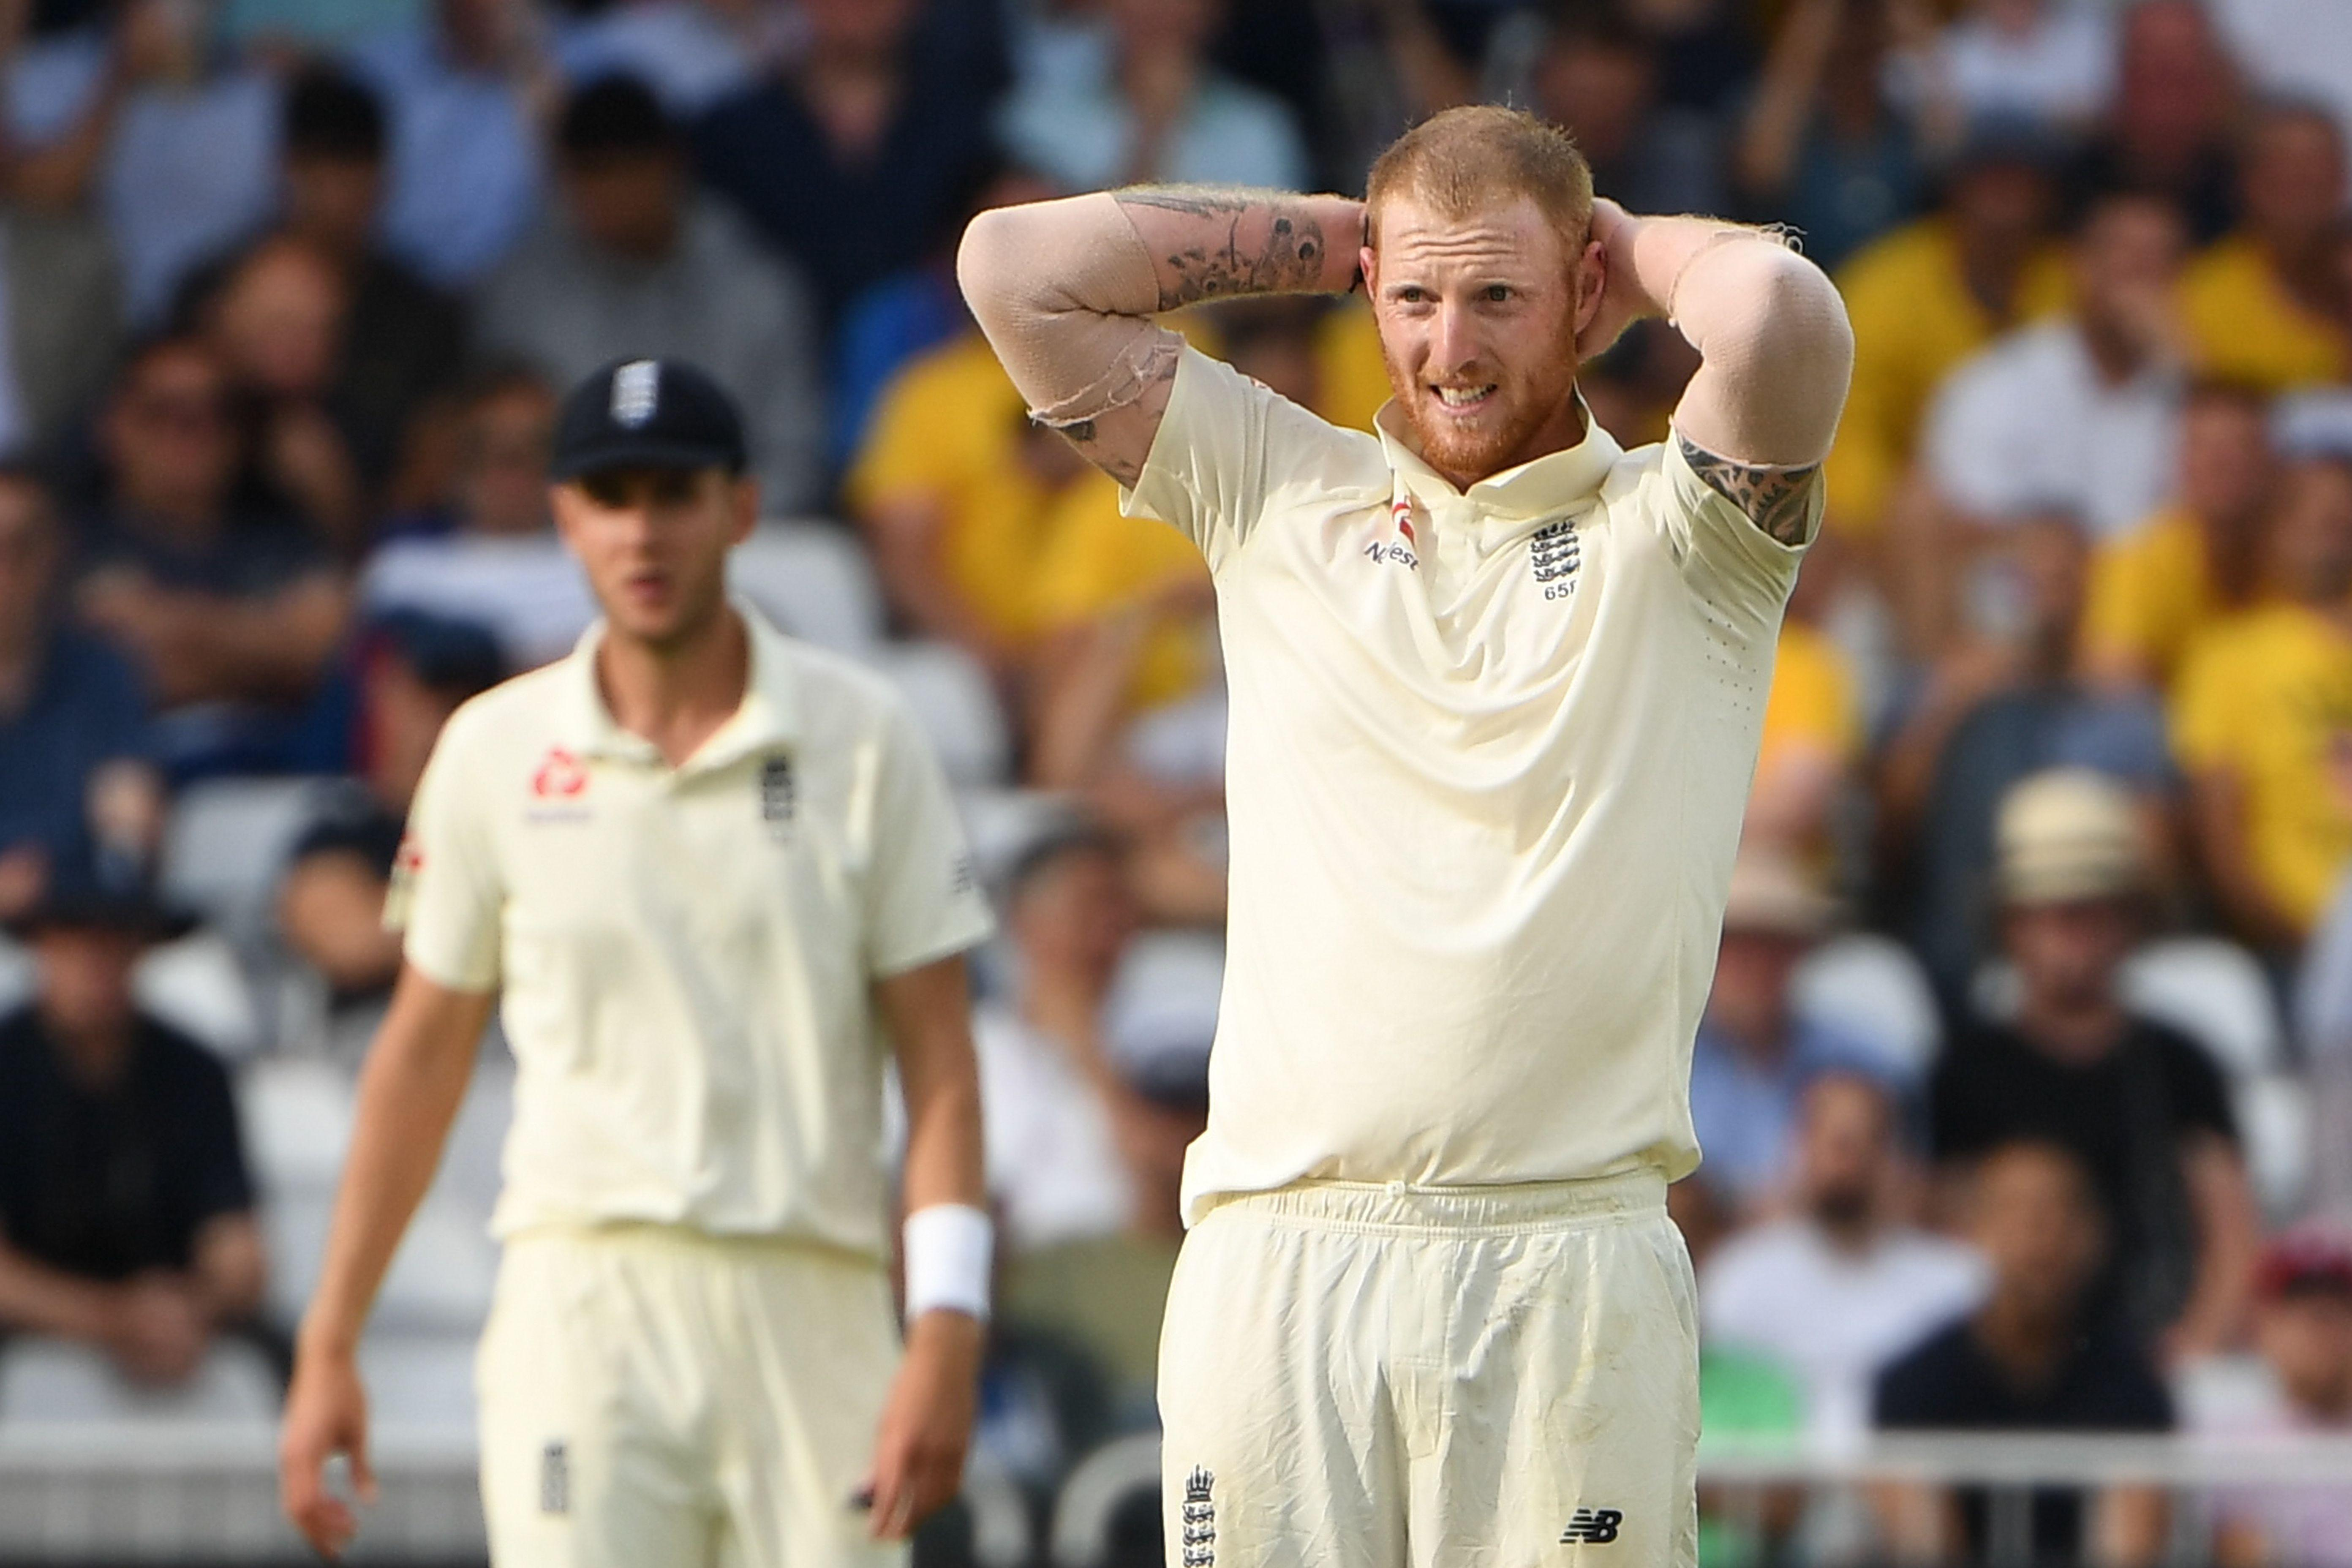 Ben Stokes was brought back into the England team for the third test against India